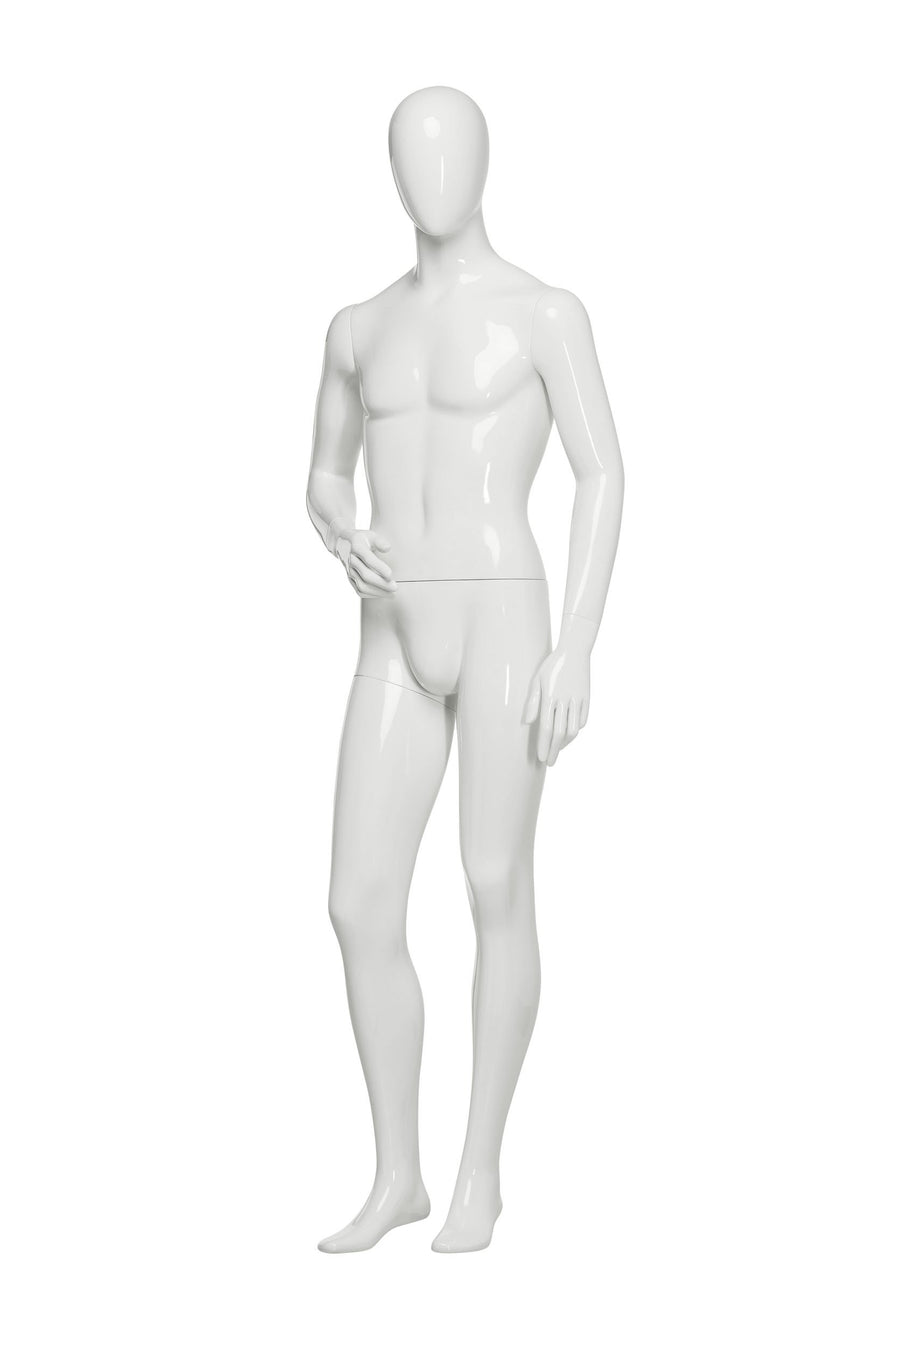 pure white male mannequin with blank face and right arm slightly bent